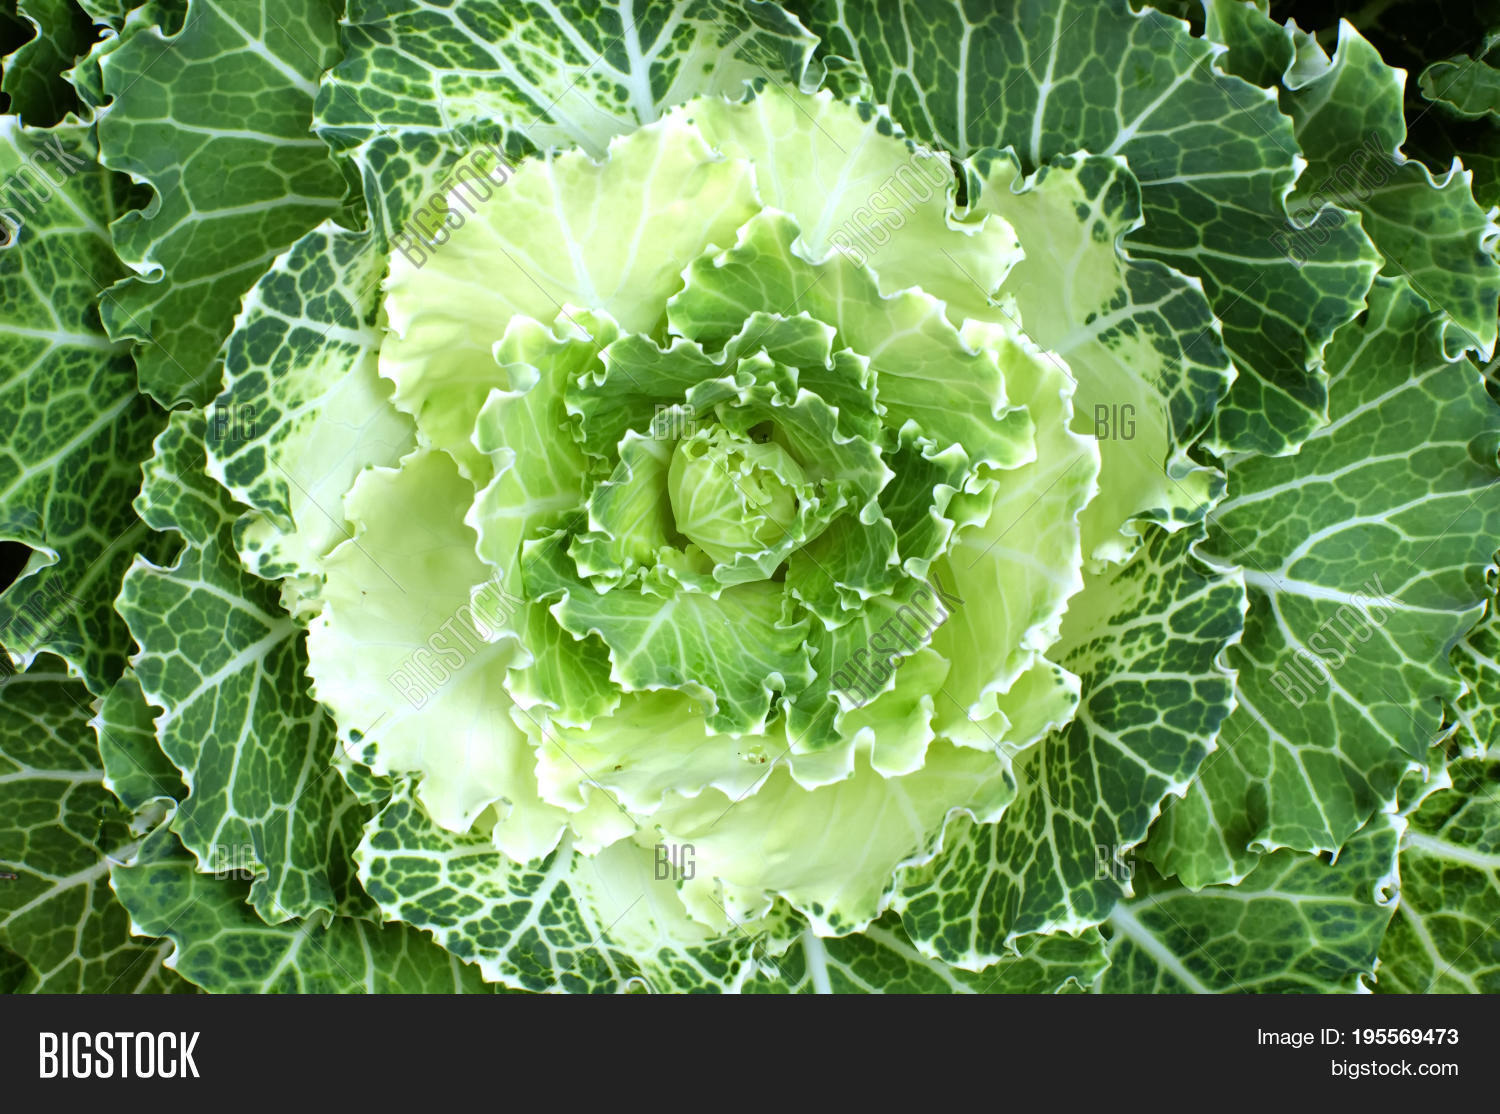 Cabbage Leaves That Image Photo Free Trial Bigstock